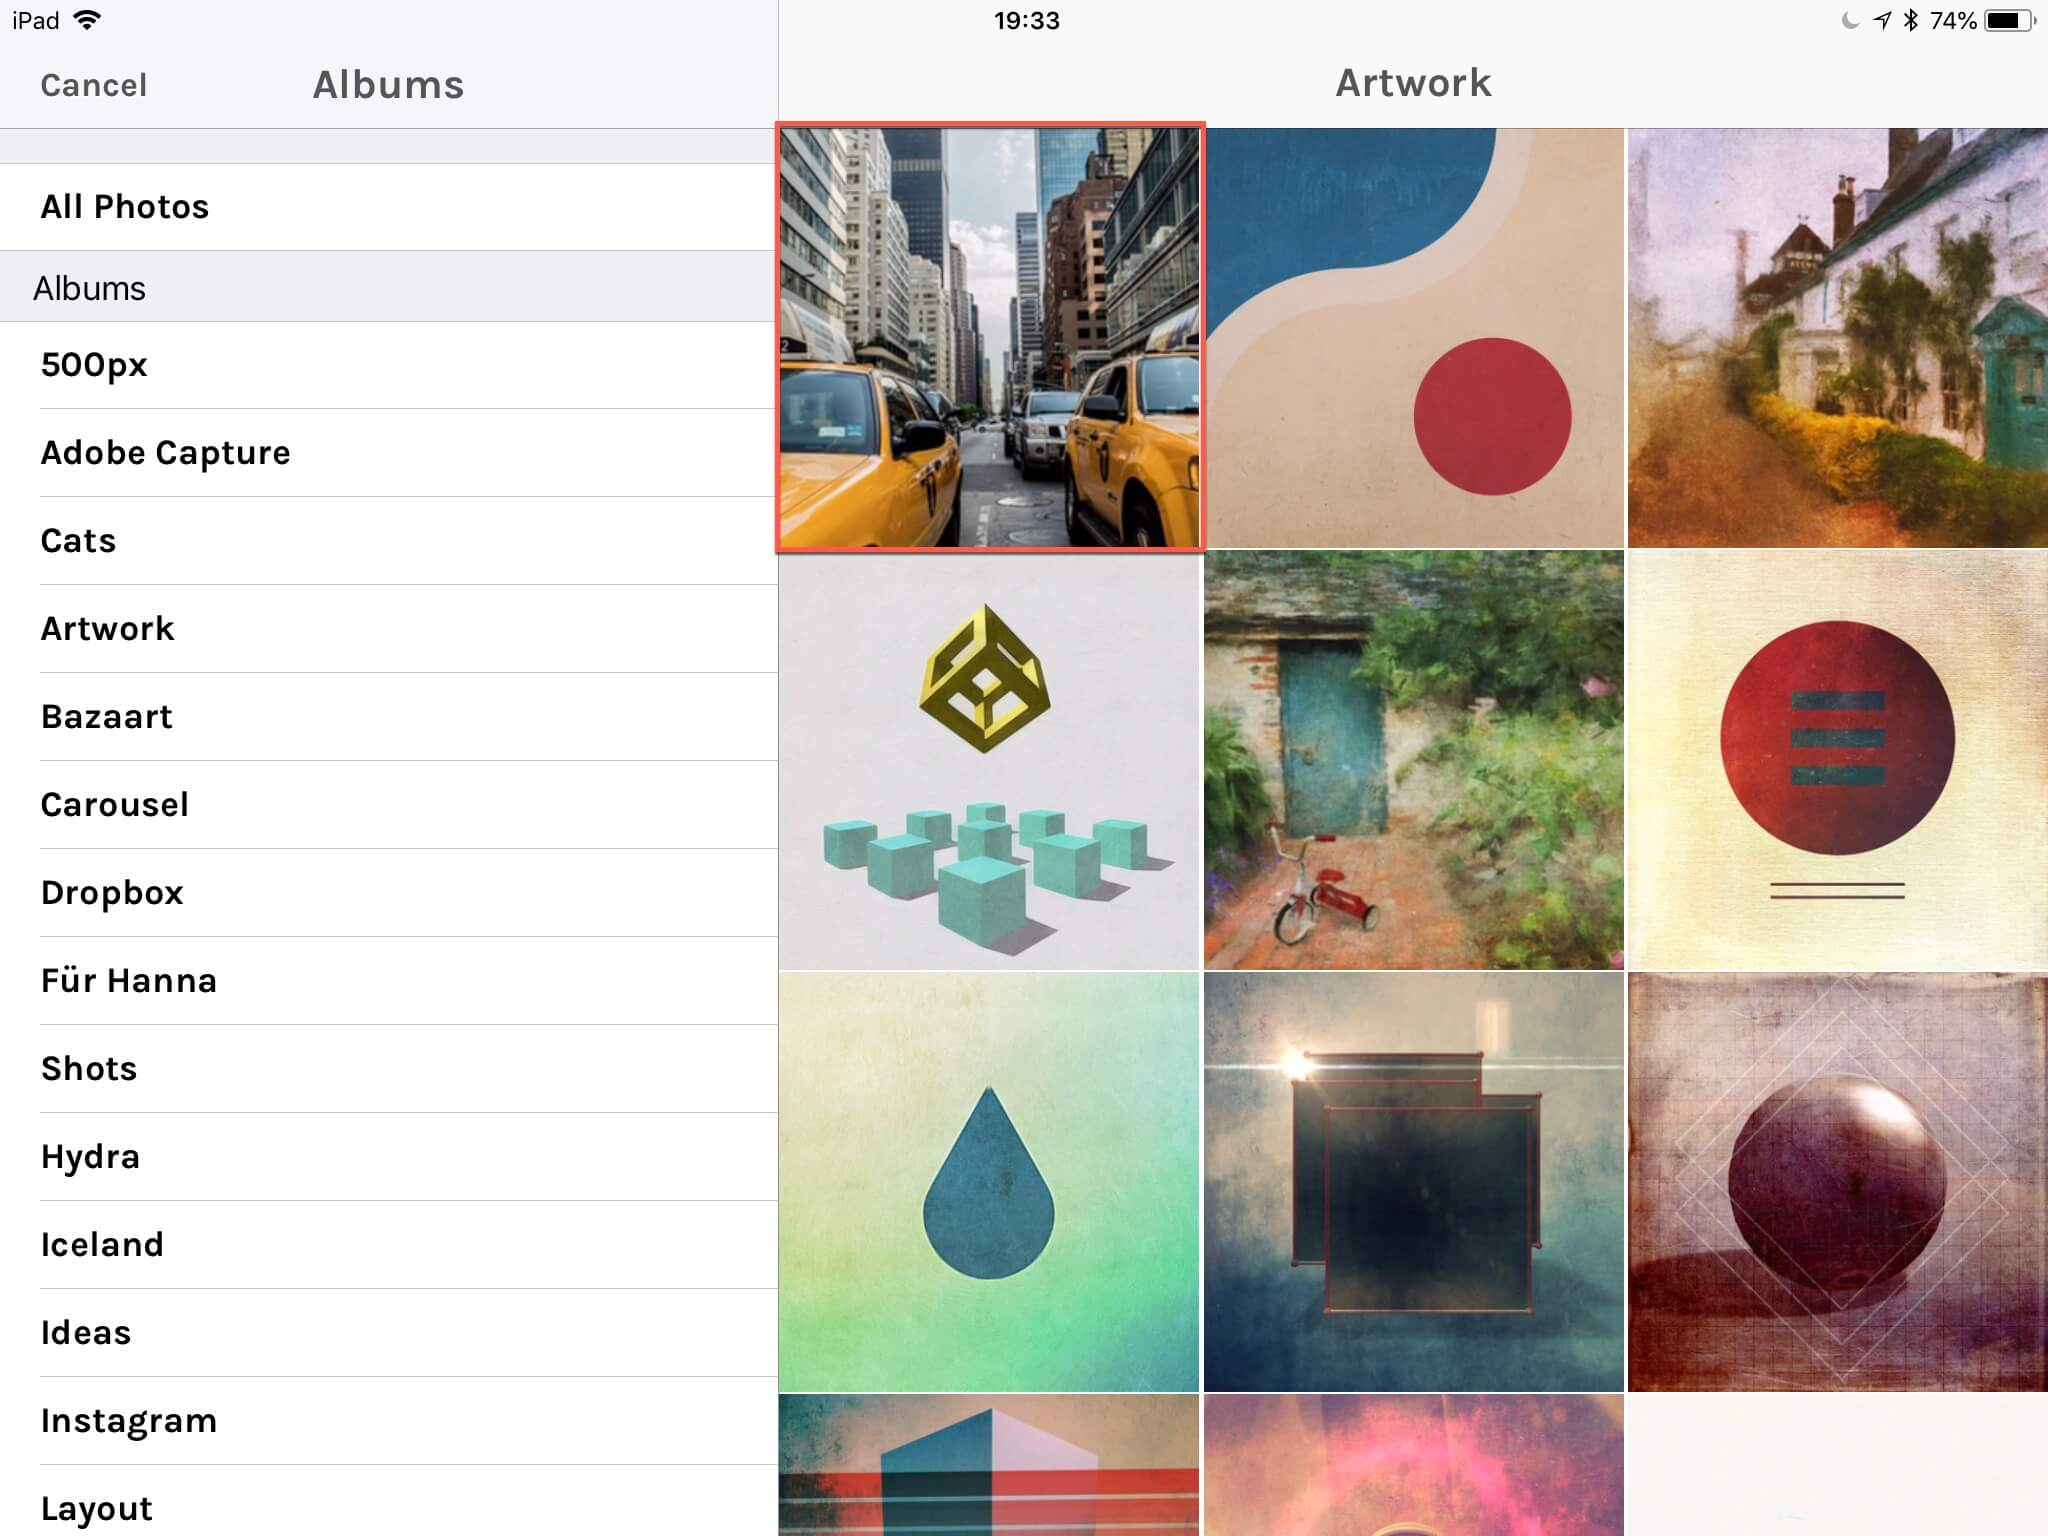 A screenshot of the images selection view in Resize 2x